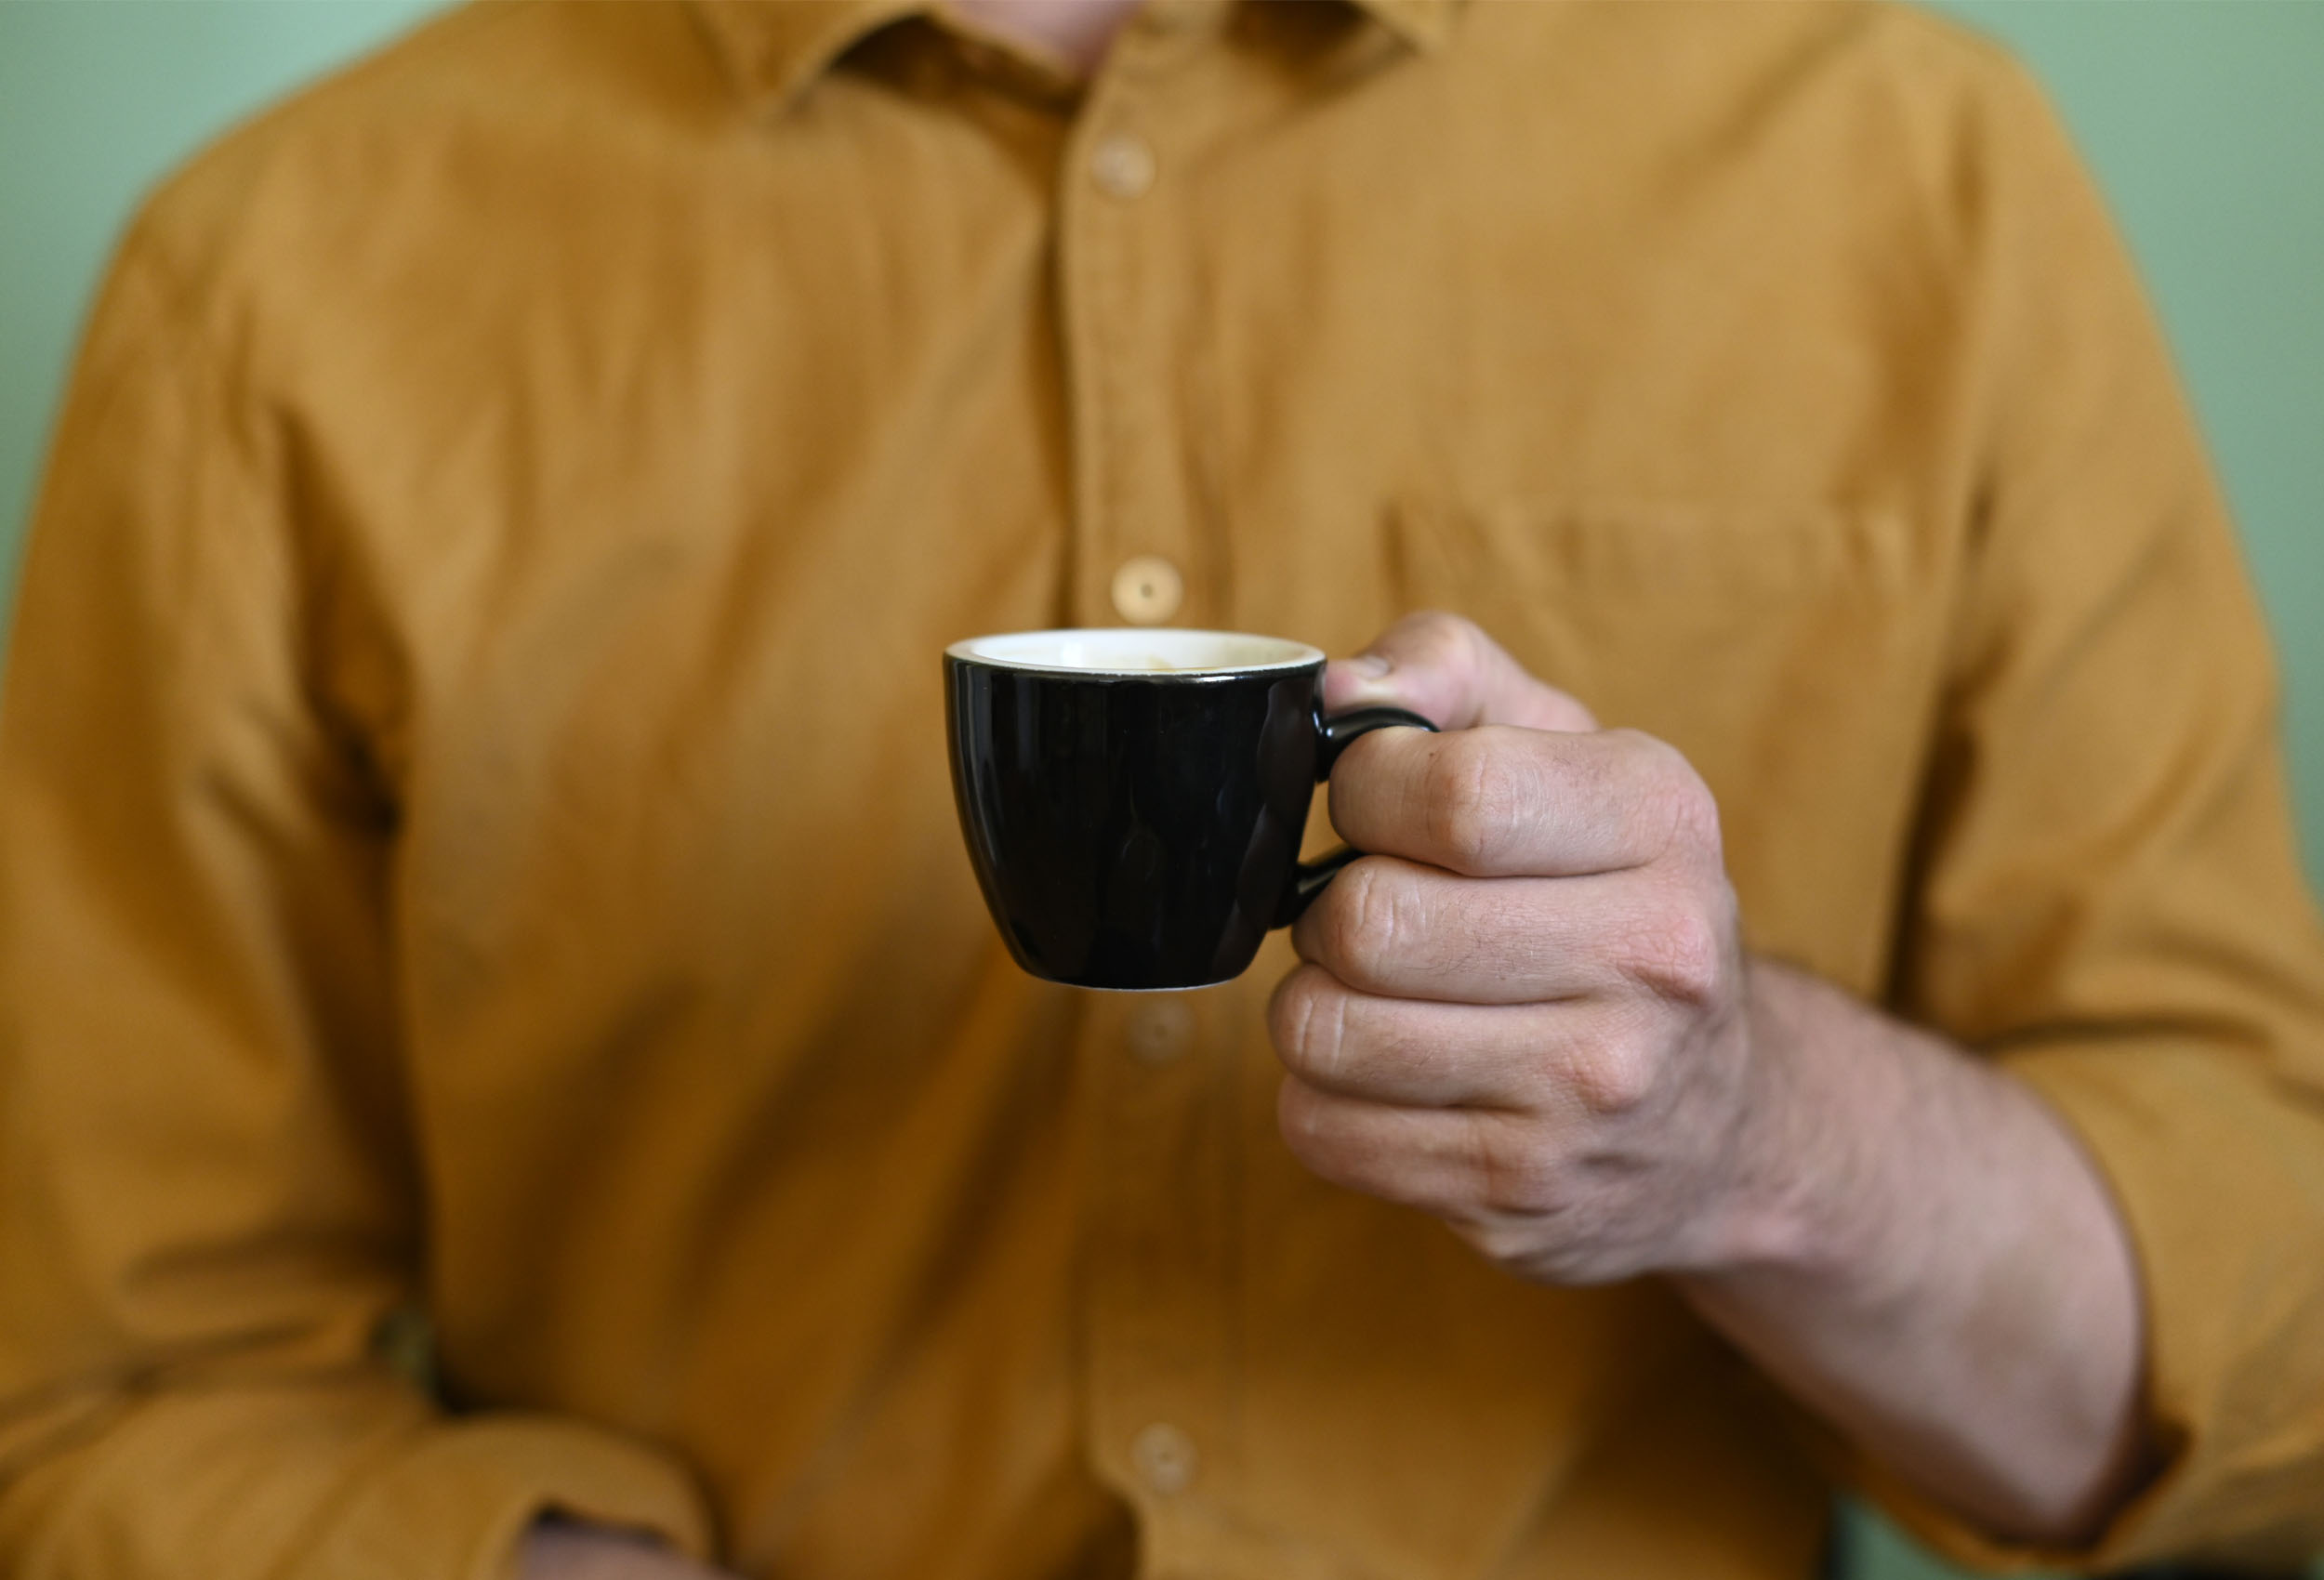 man holding a black espresso cup